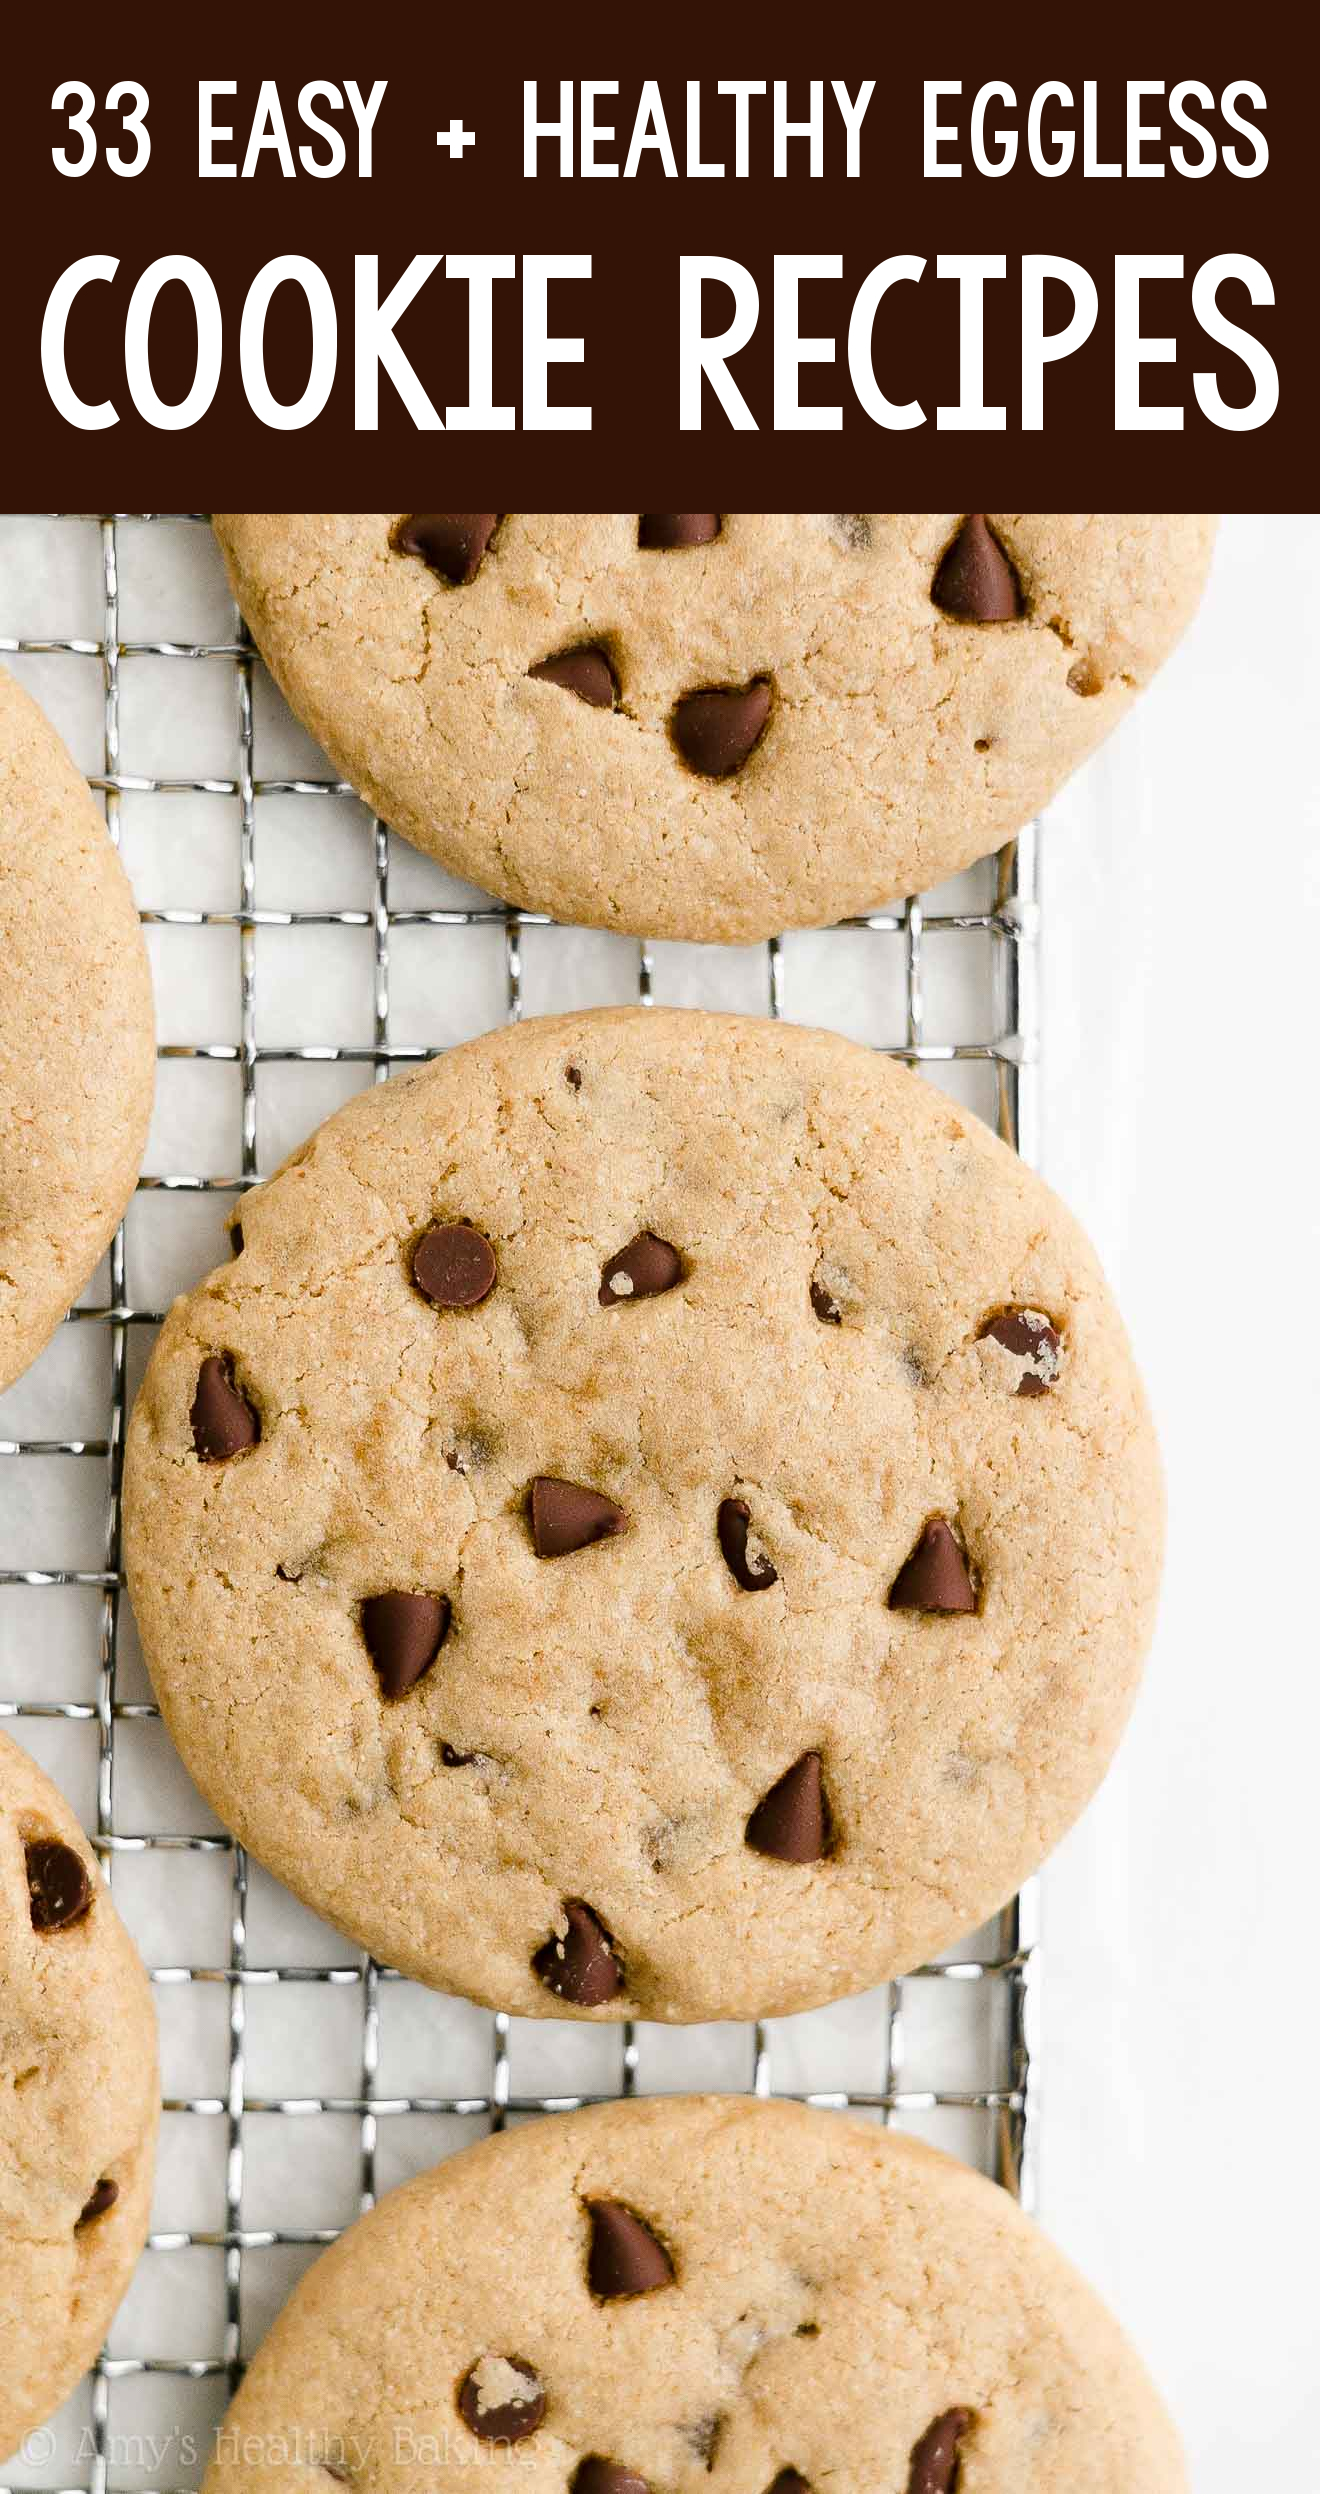 the BEST EVER healthy dairy-free eggless vegan chocolate chip peanut butter cookies